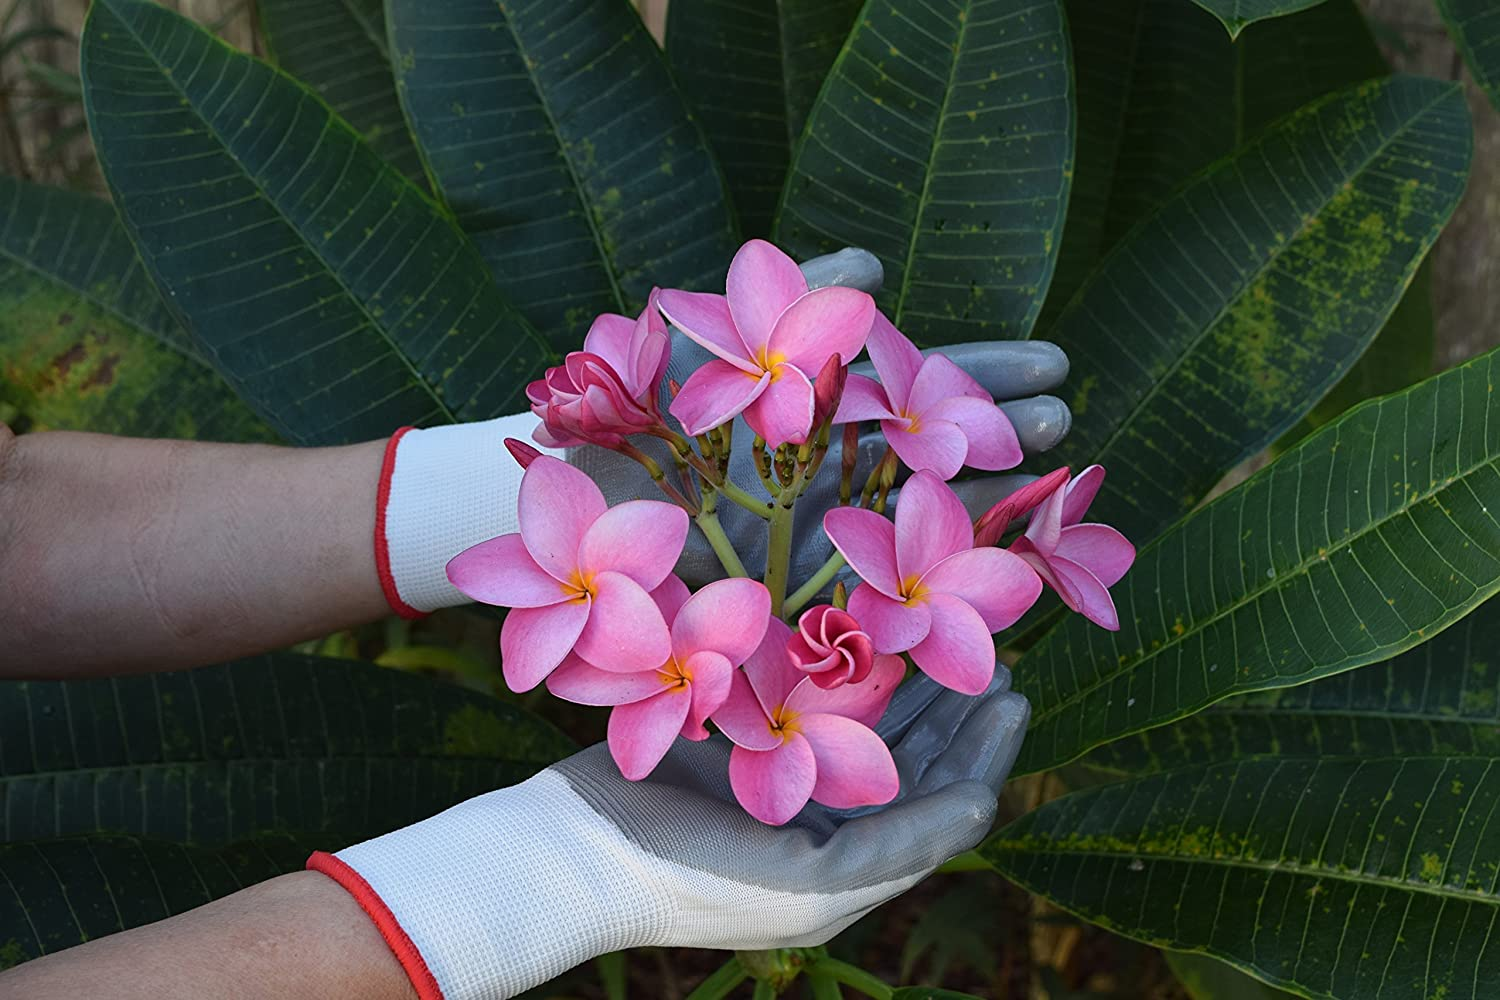 Best gardening gloves for women growing tomatoes 4 you for Gardening gloves ladies